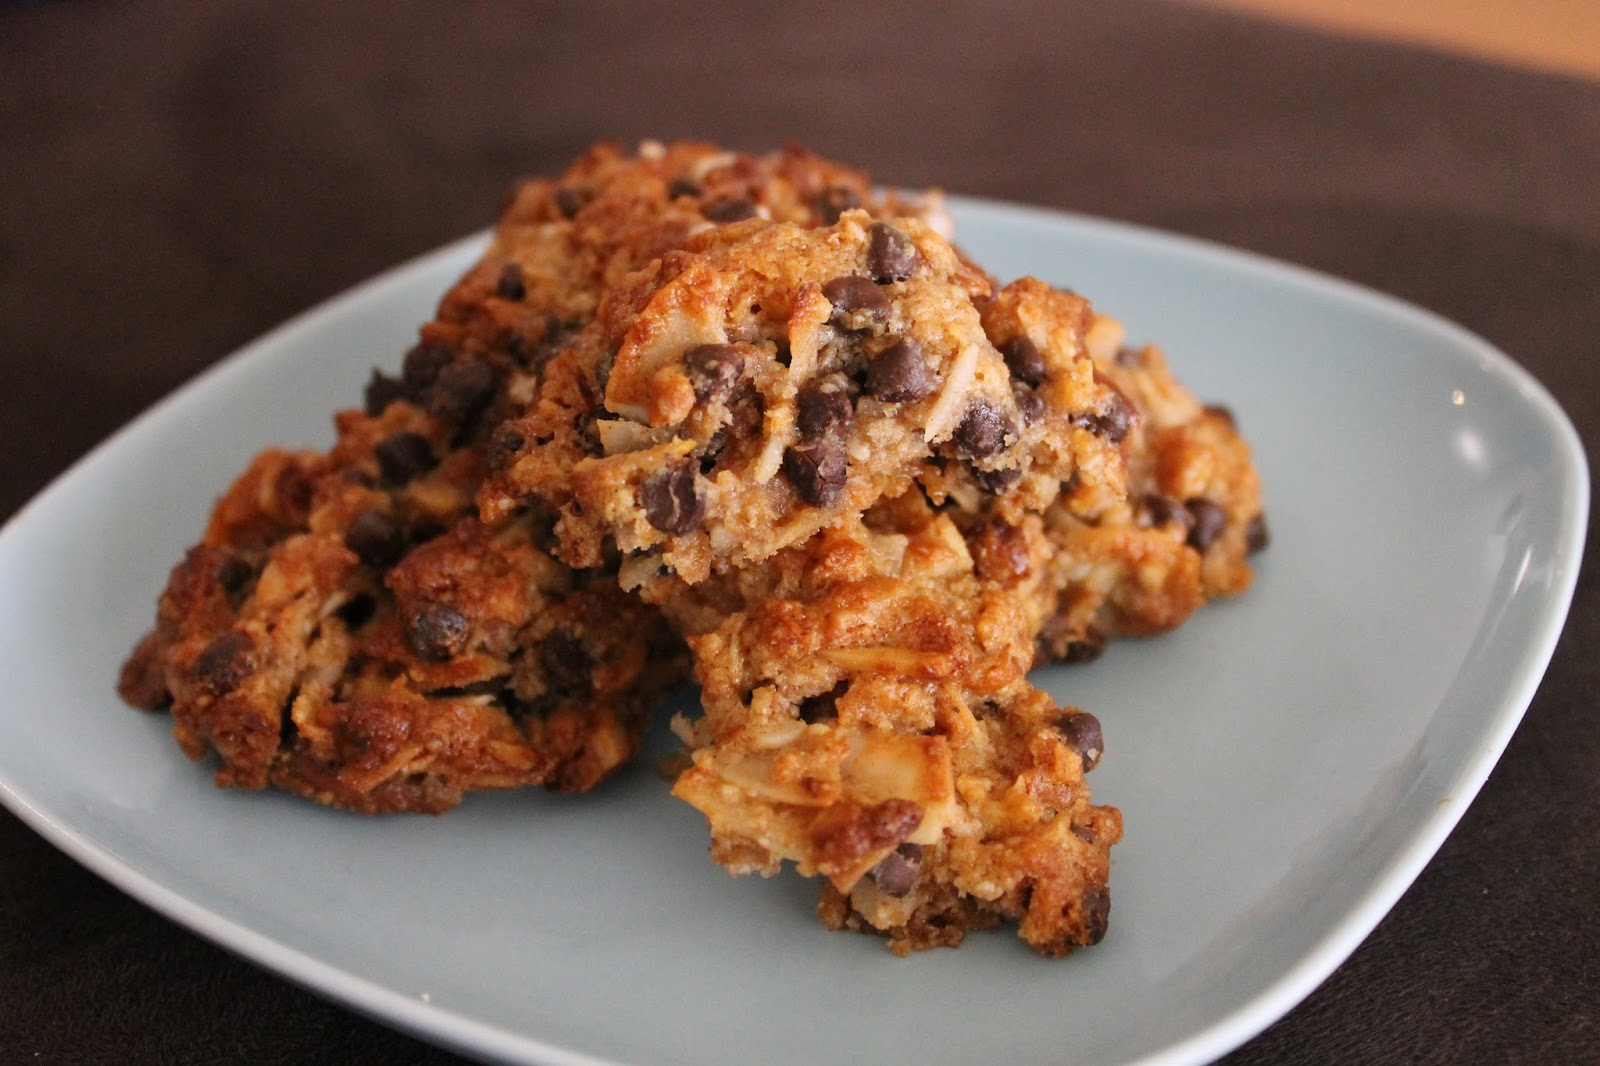 compost kitchen sink cookies kitchen sink cookies I found this recipes for grain free kitchen sink cookies from Frisky Lemon Nutrition Allison suggests adding your own kitchen sink ingredients